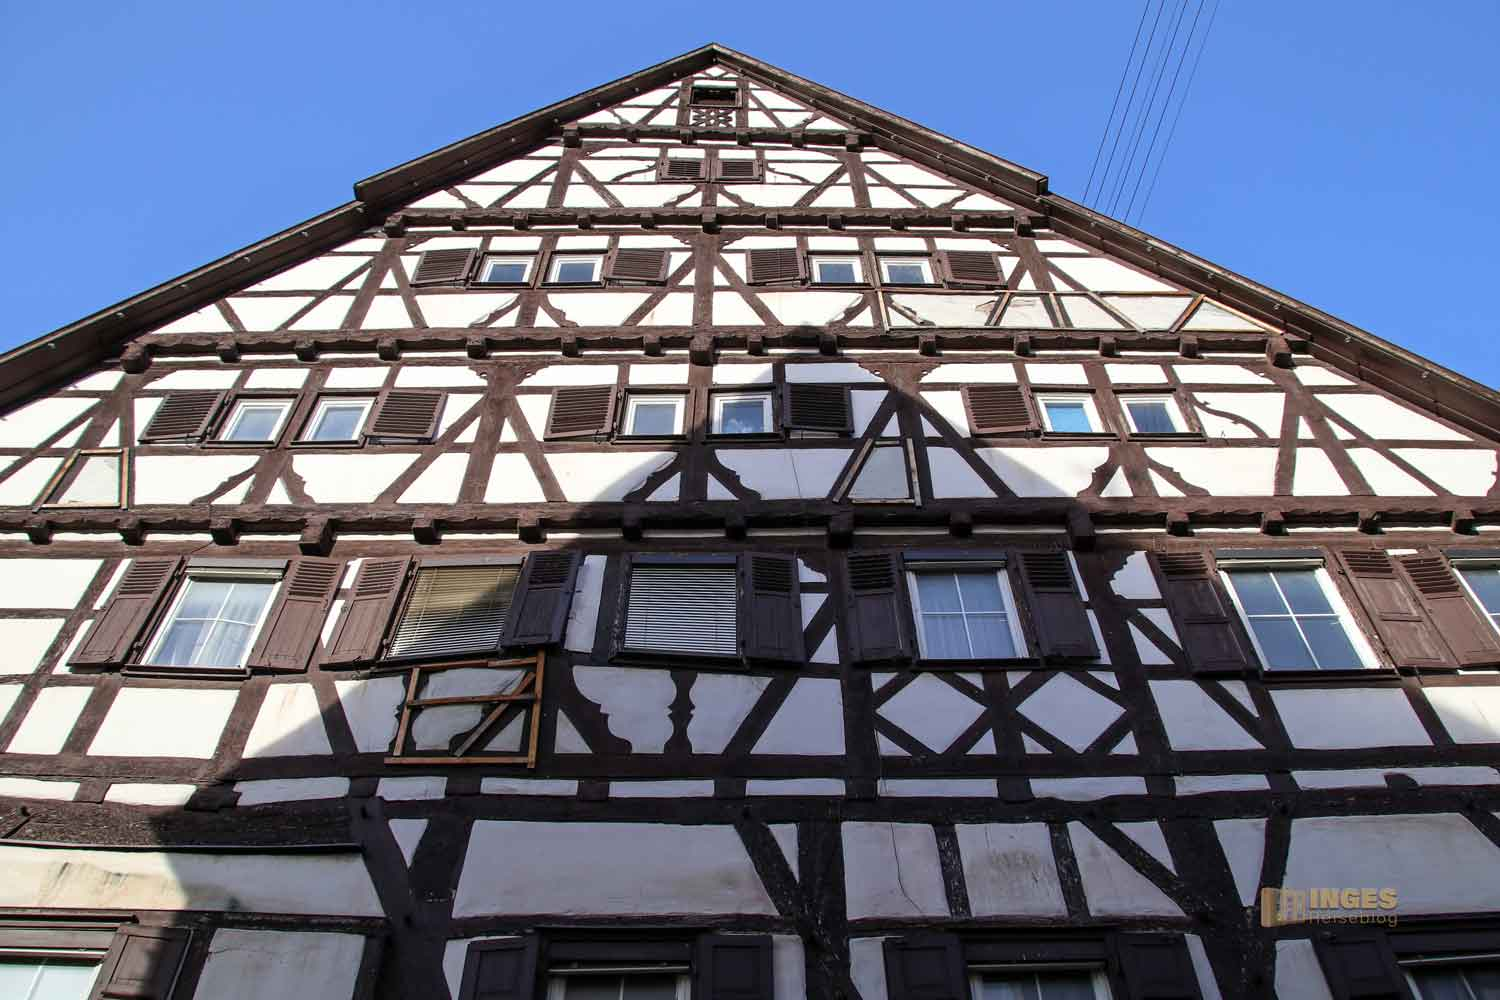 Sprandel'sches Haus in Bad Urach 0528